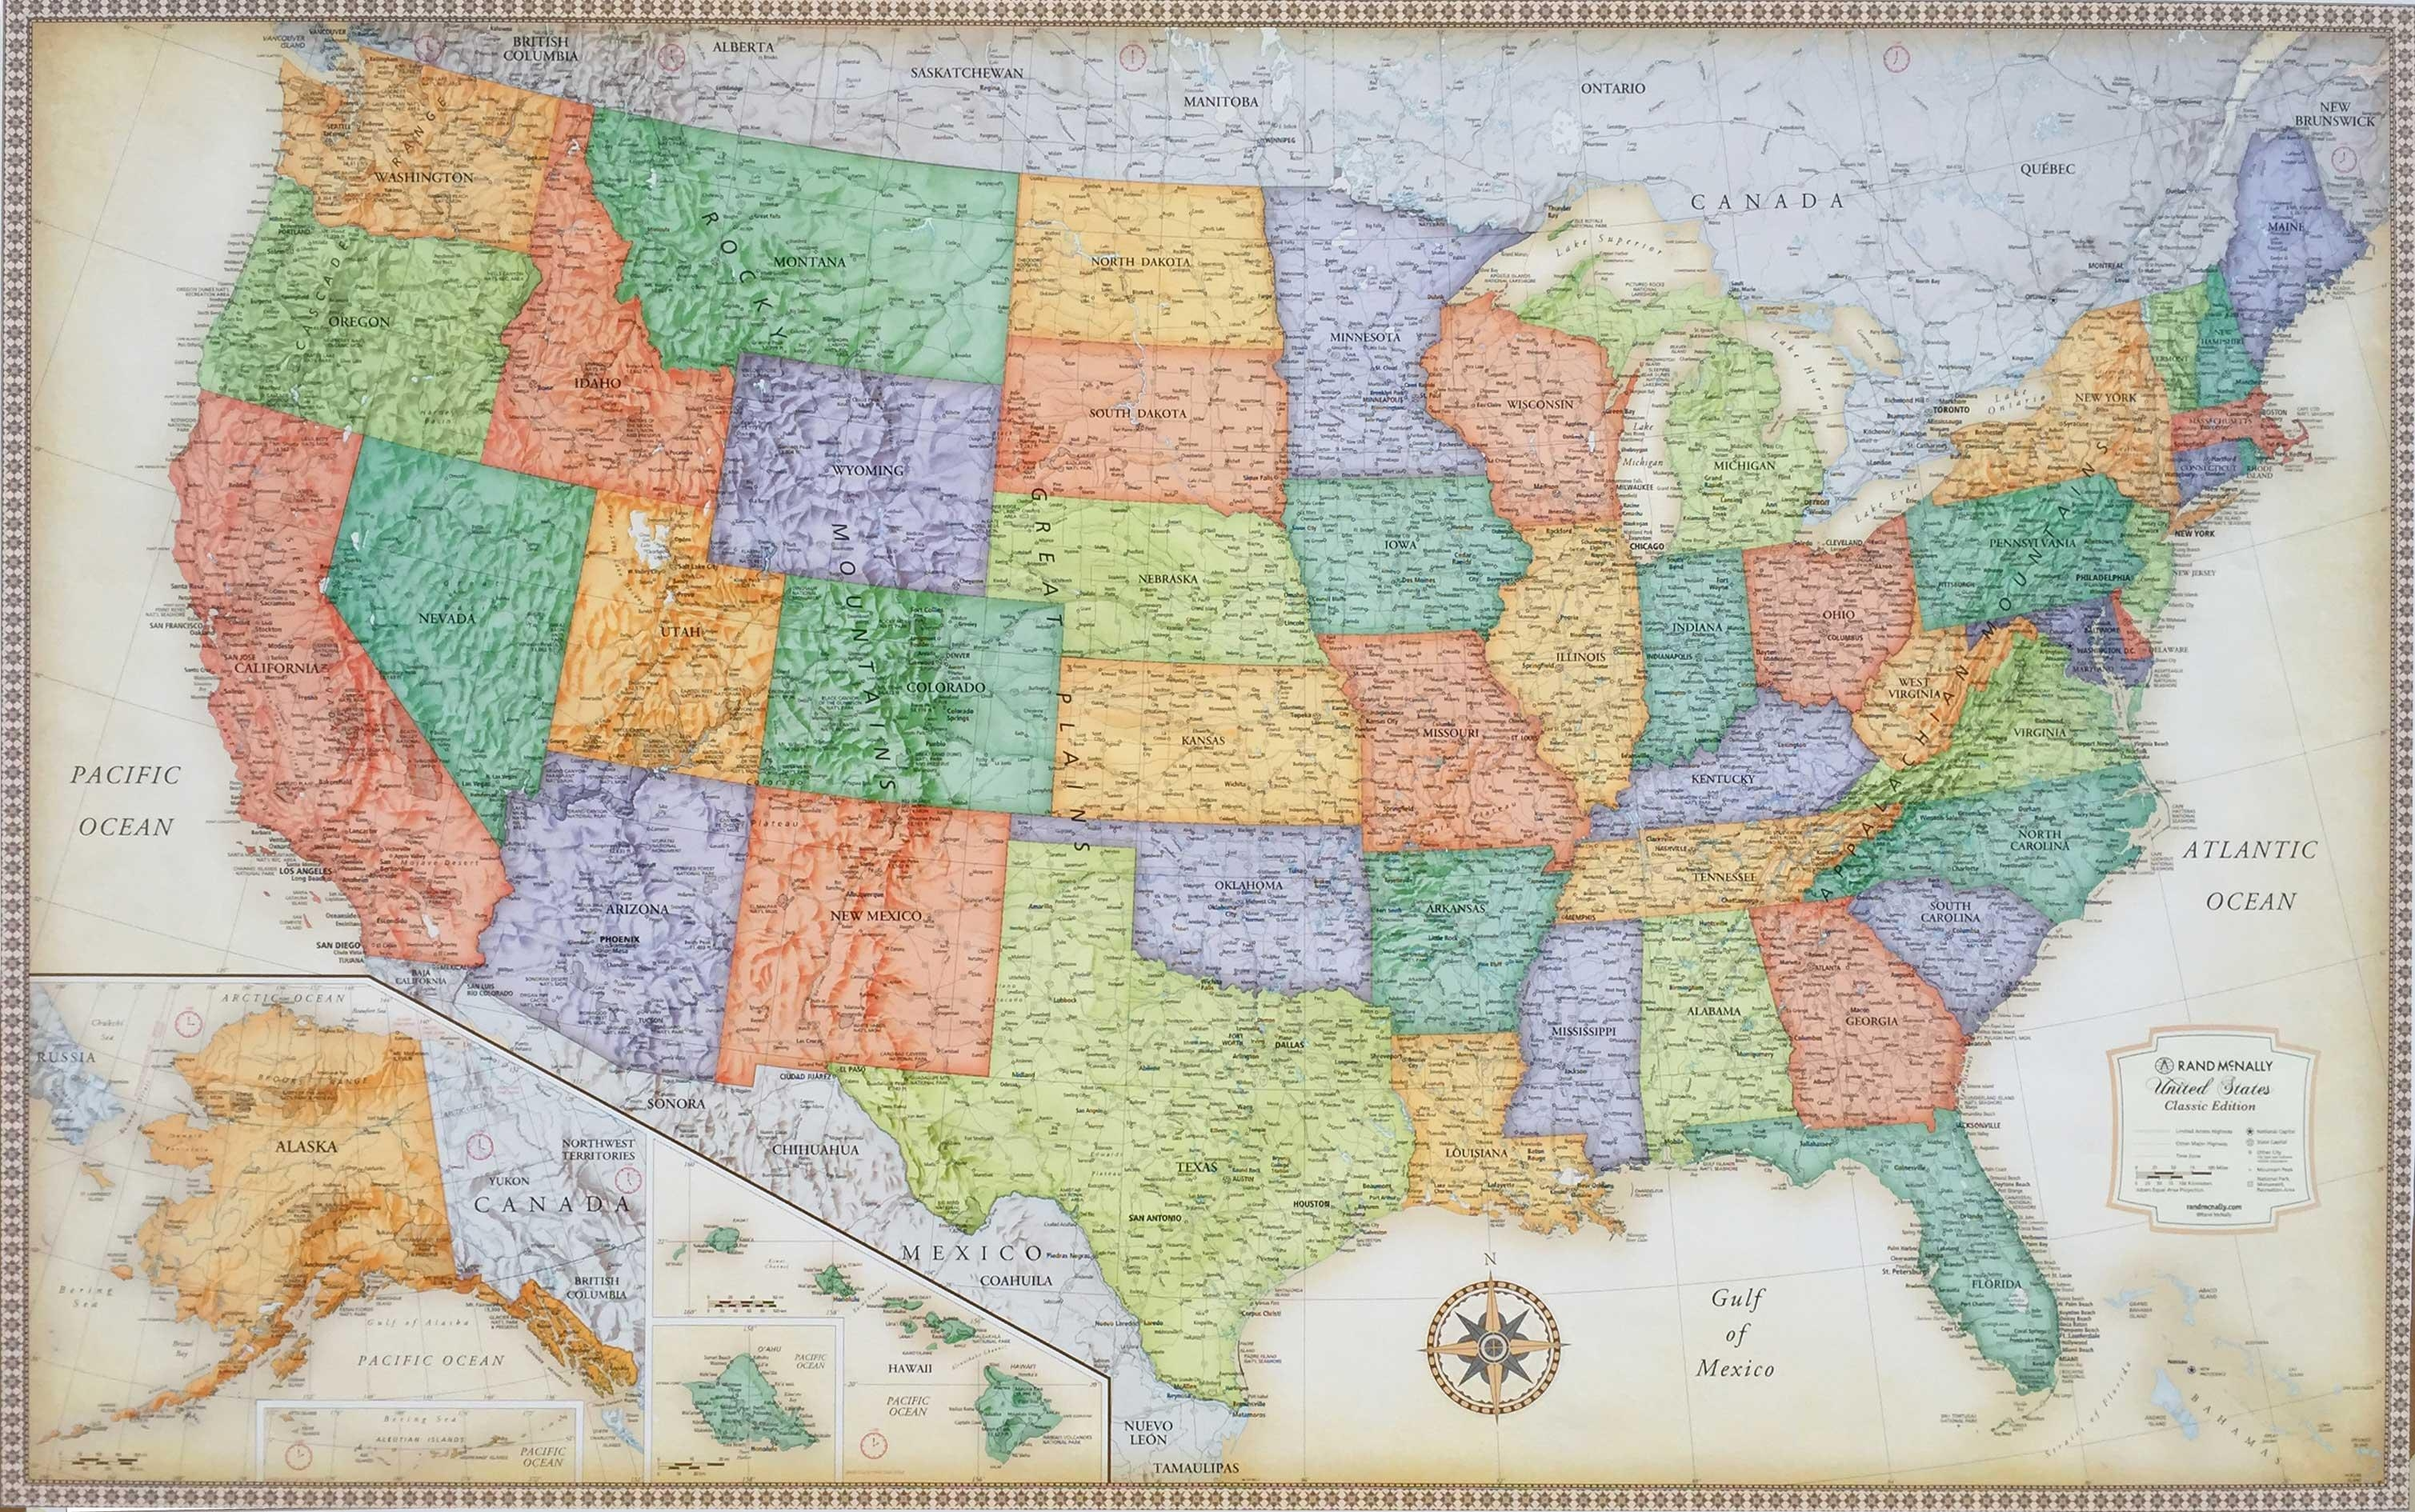 United States Wall Maps Pertaining To United States Map Wall Art (View 13 of 21)